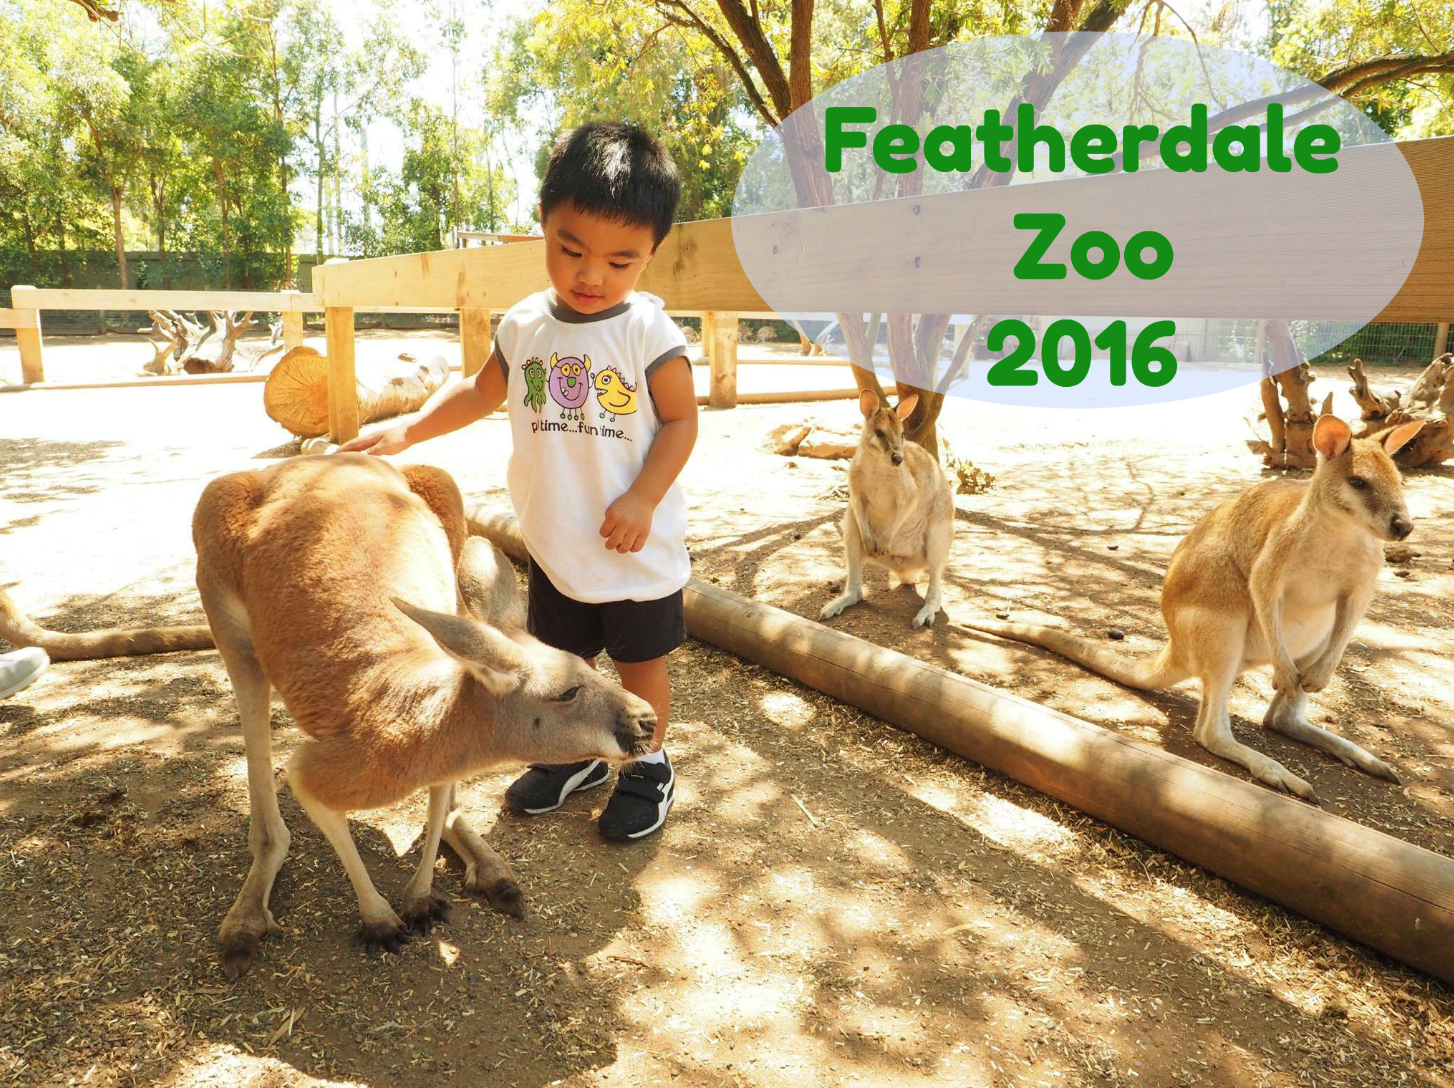 Featherdale Zoo 2016; First Encounter with Kangaroos